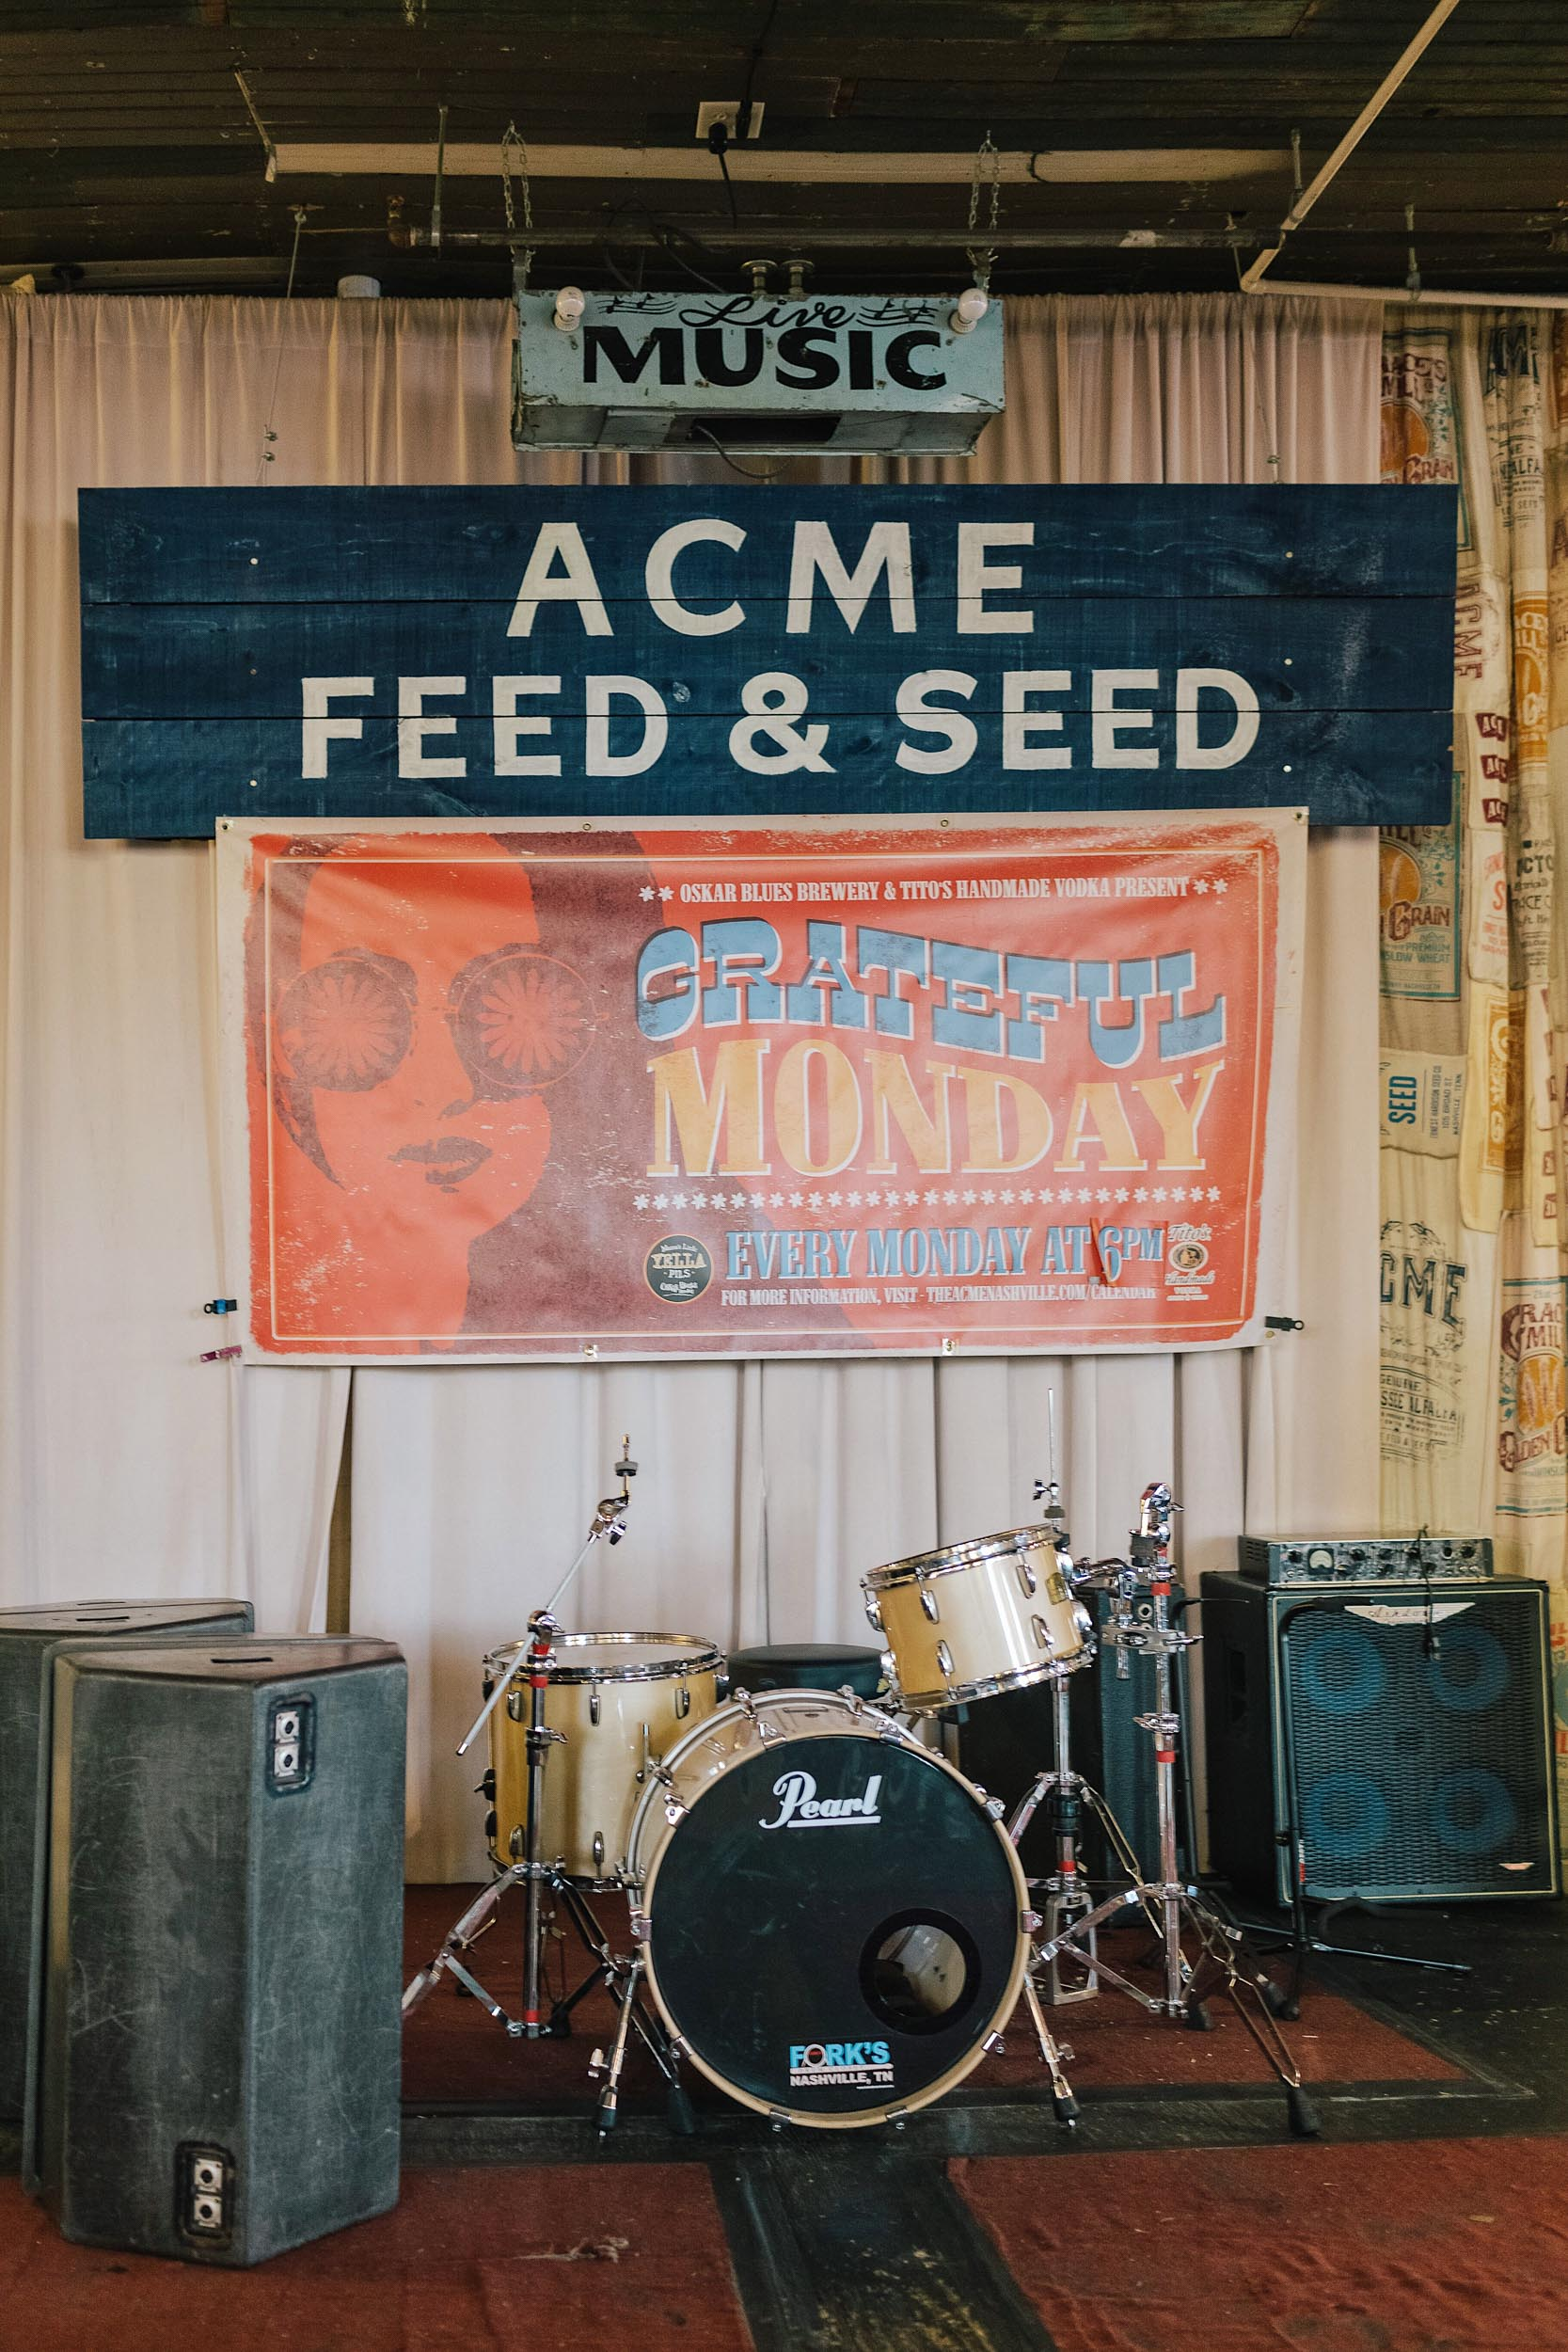 Acme Feed & Seed is a feed store turned restaurant-cocktail-entertainment space on Lower Broadway. Sometimes there is live music, too!